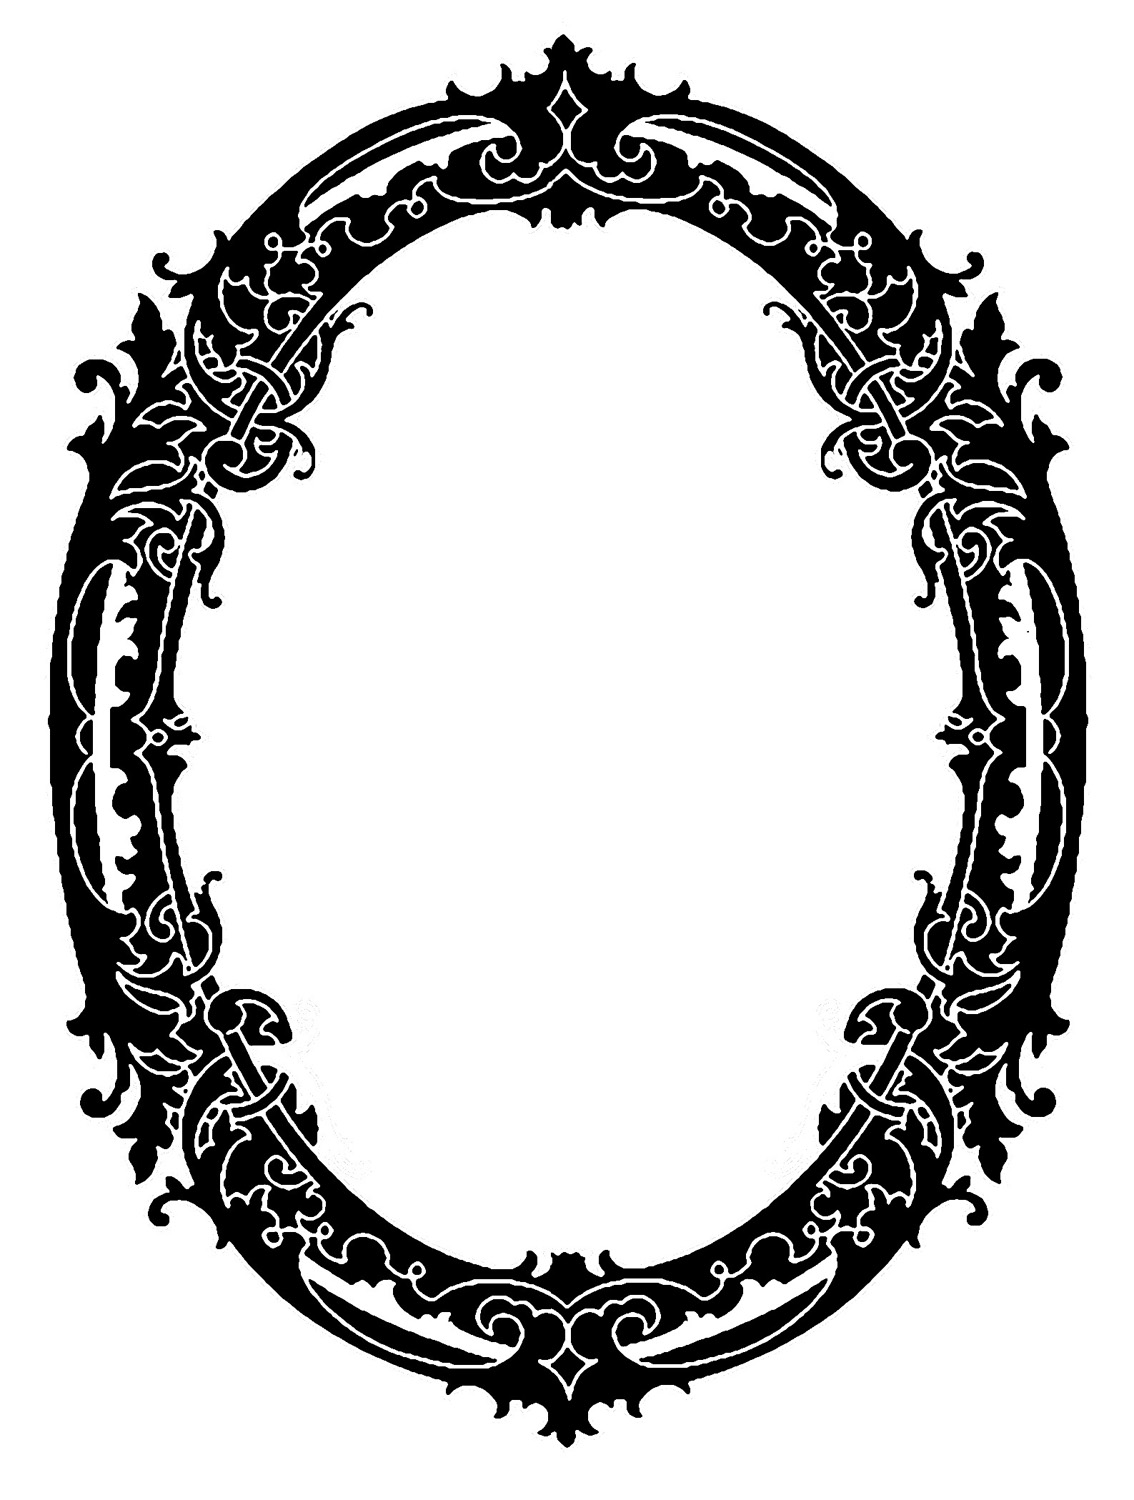 I adore this Vintage Oval frame!!! This one came from some Antique Sheet  Music and I tweaked it a bit to create the Silhouette version that you see  here. - Antique Oval Frame PNG